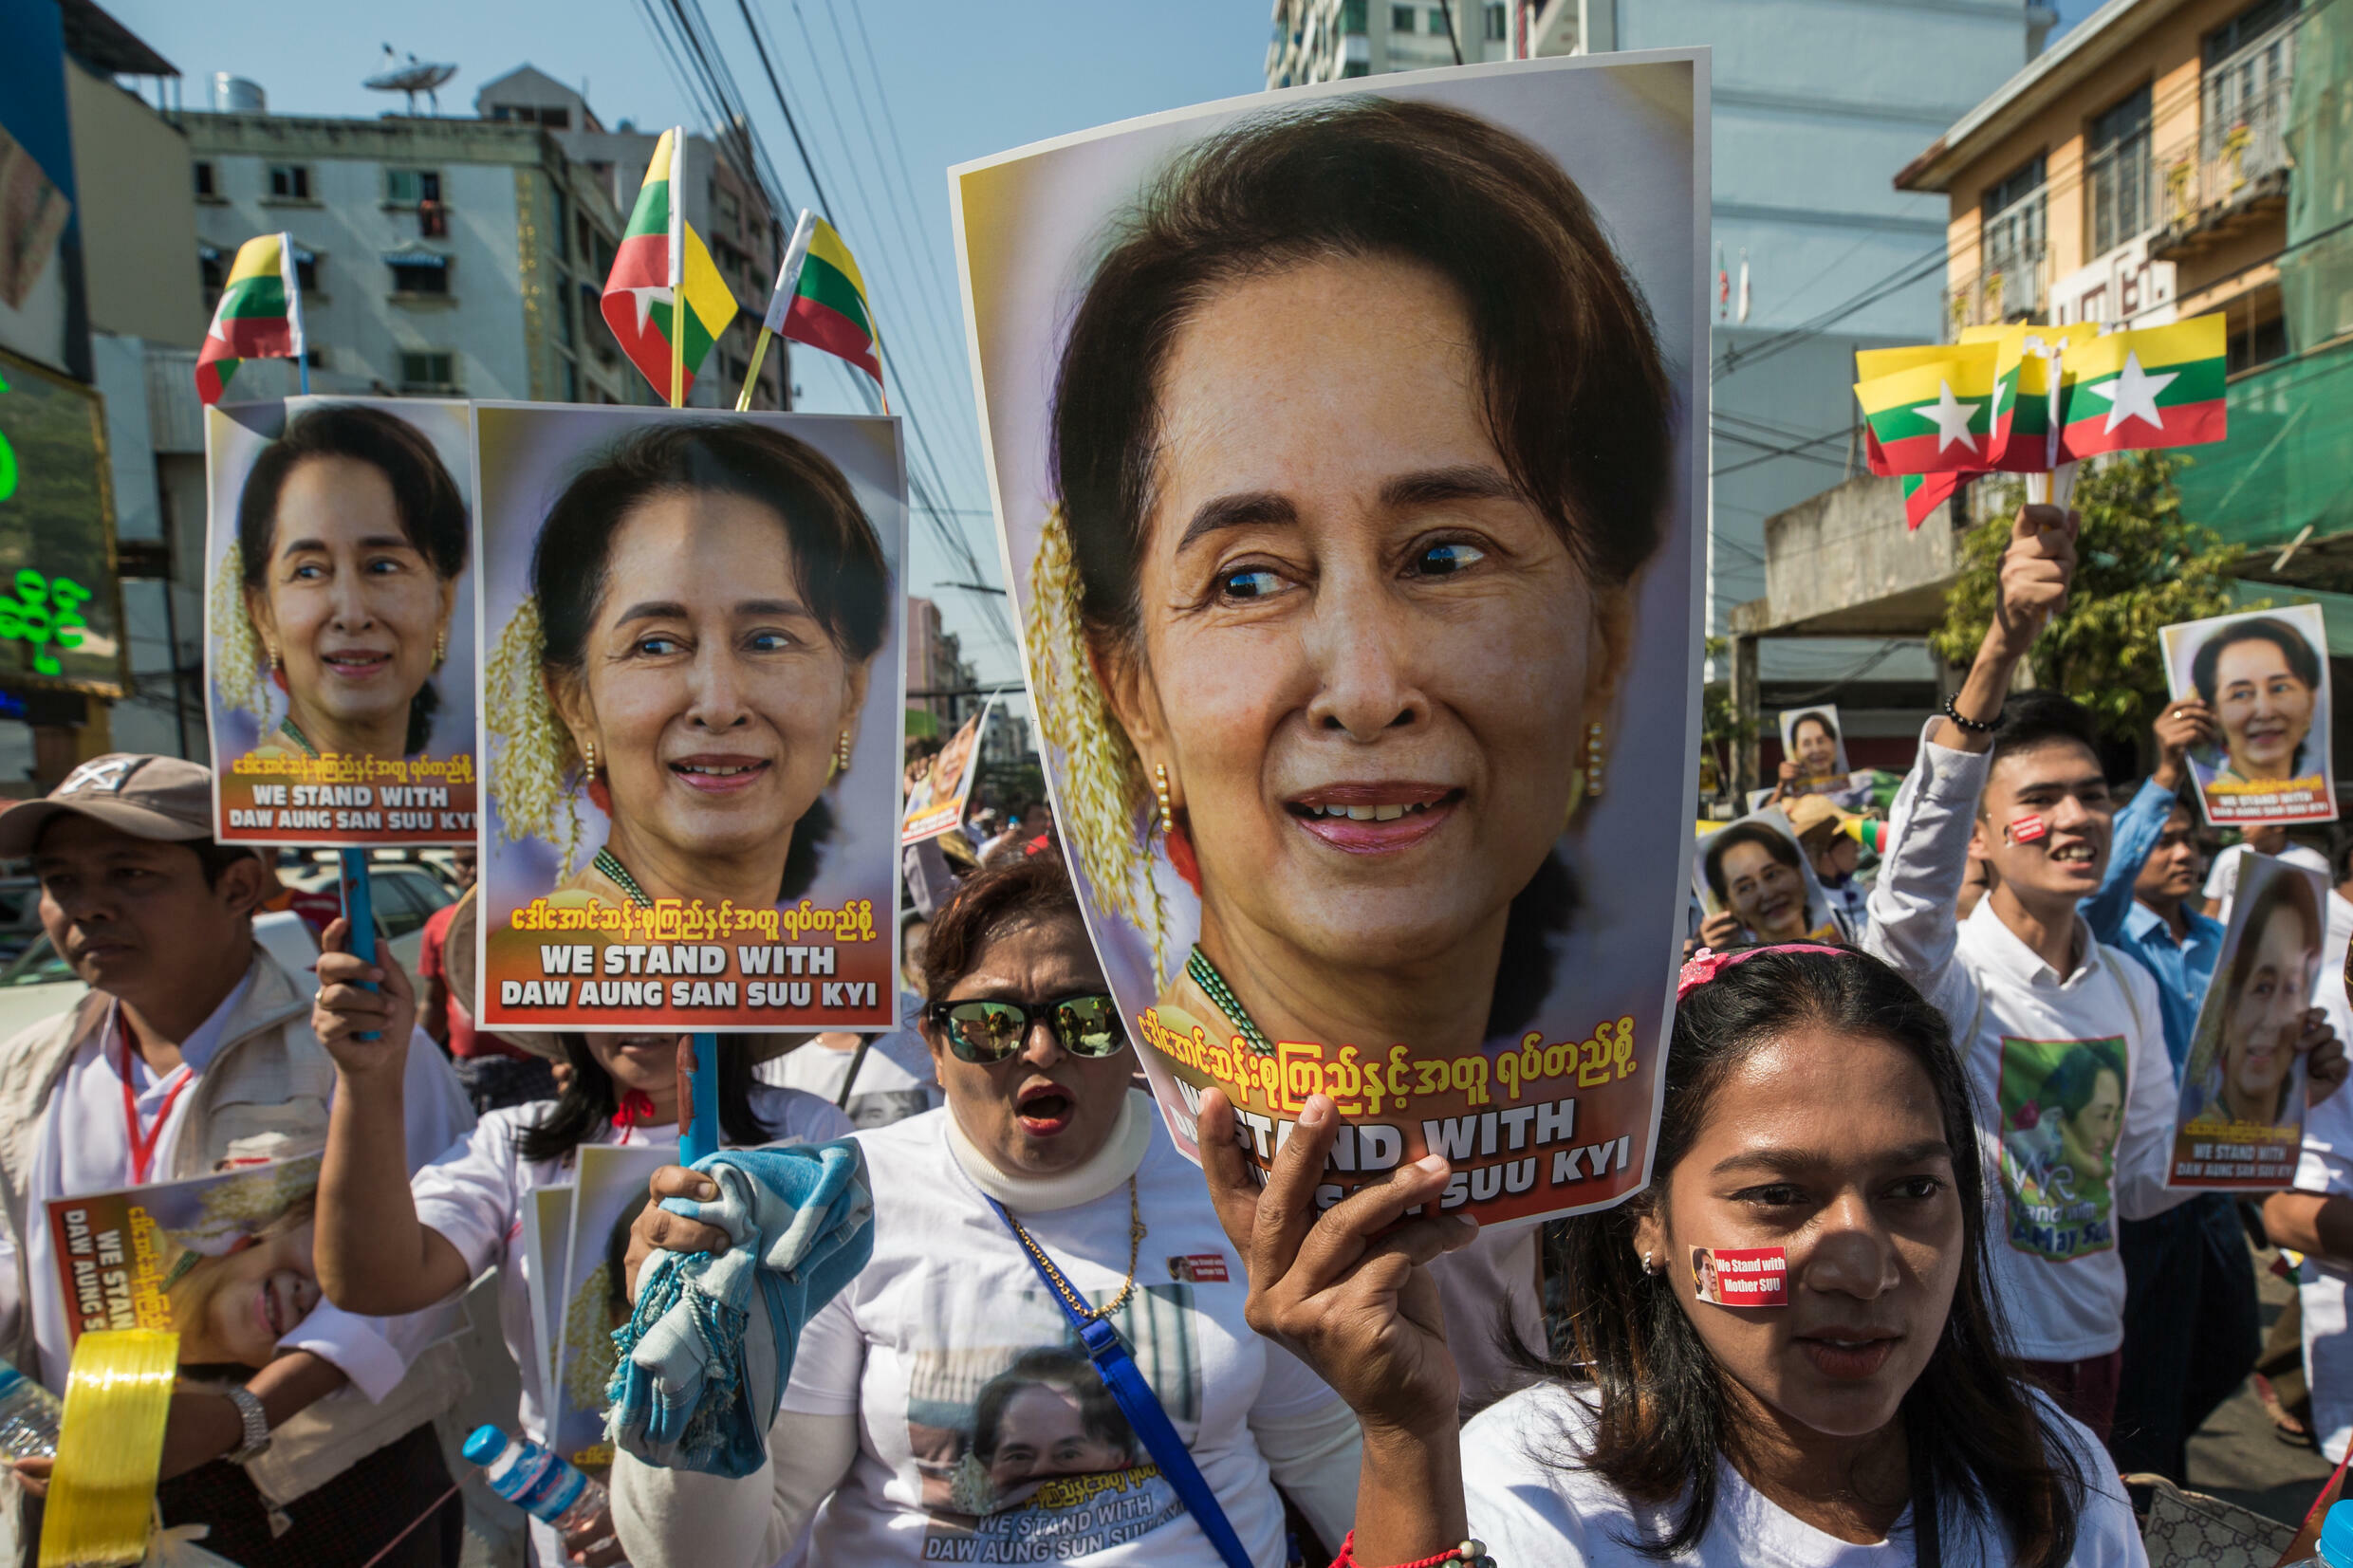 Myanmar's junta has said it was unlikely an ASEAN special envoy would be allowed to meet ousted pro-democracy leader Aung San Suu Kyi